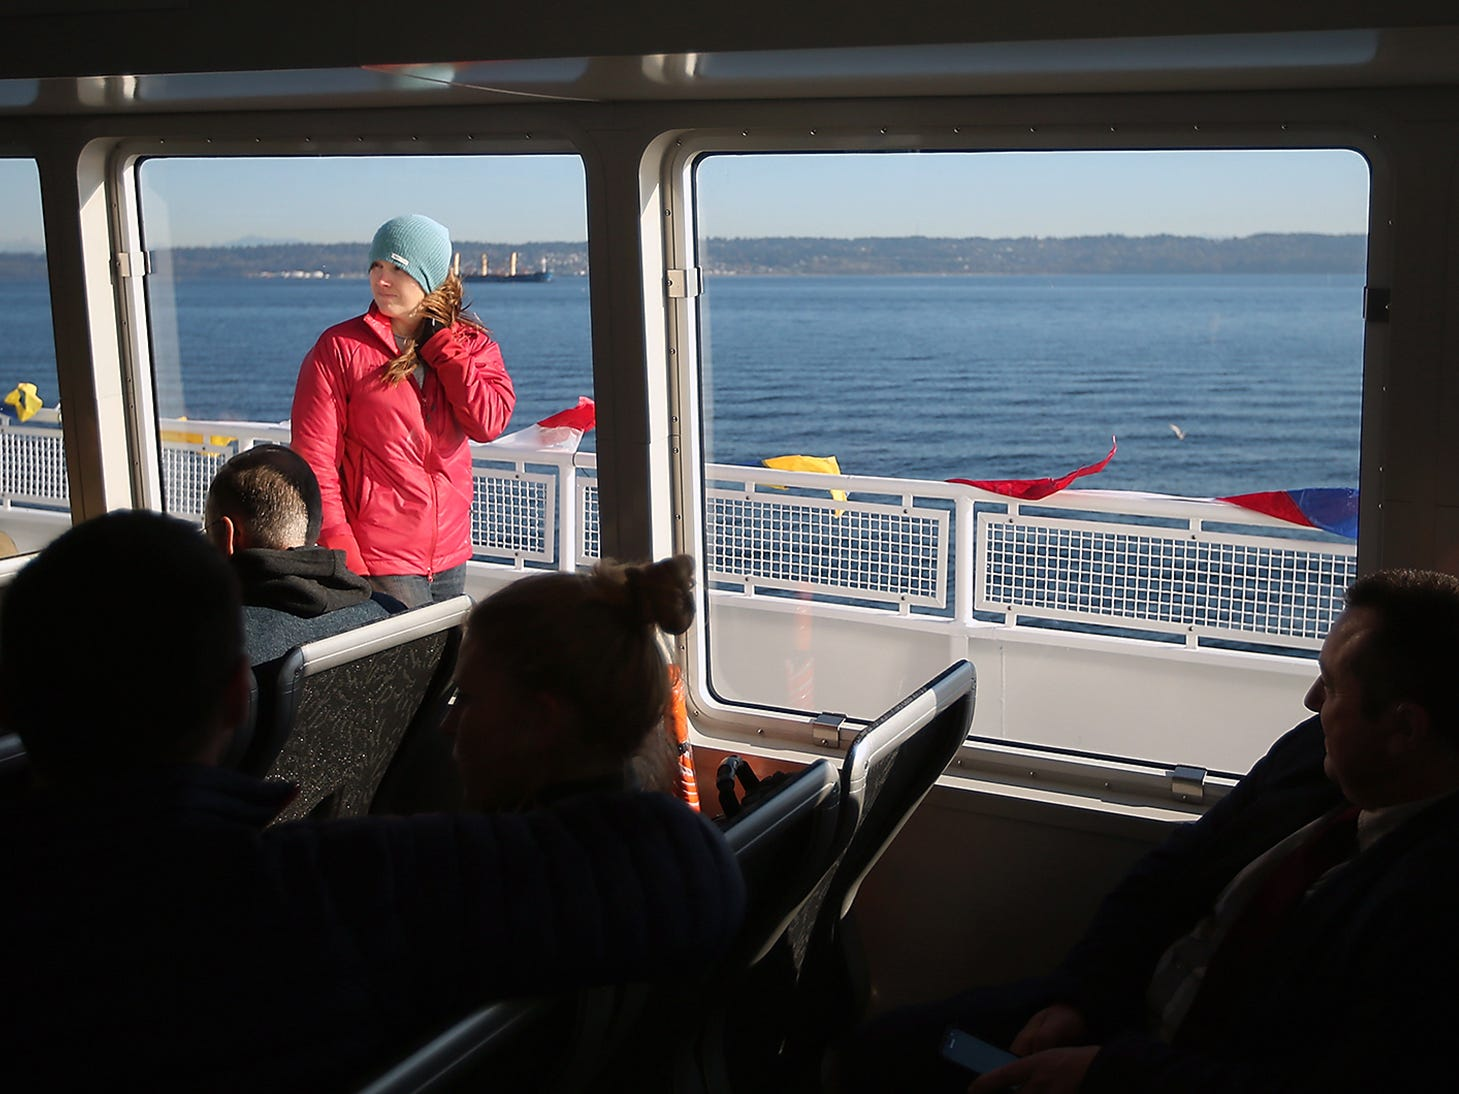 Shannan Yates, of Salt Lake City UT., is framed by the cabin windows during the grand opening ride aboard the M/V Finest on Monday, November 19, 2018.